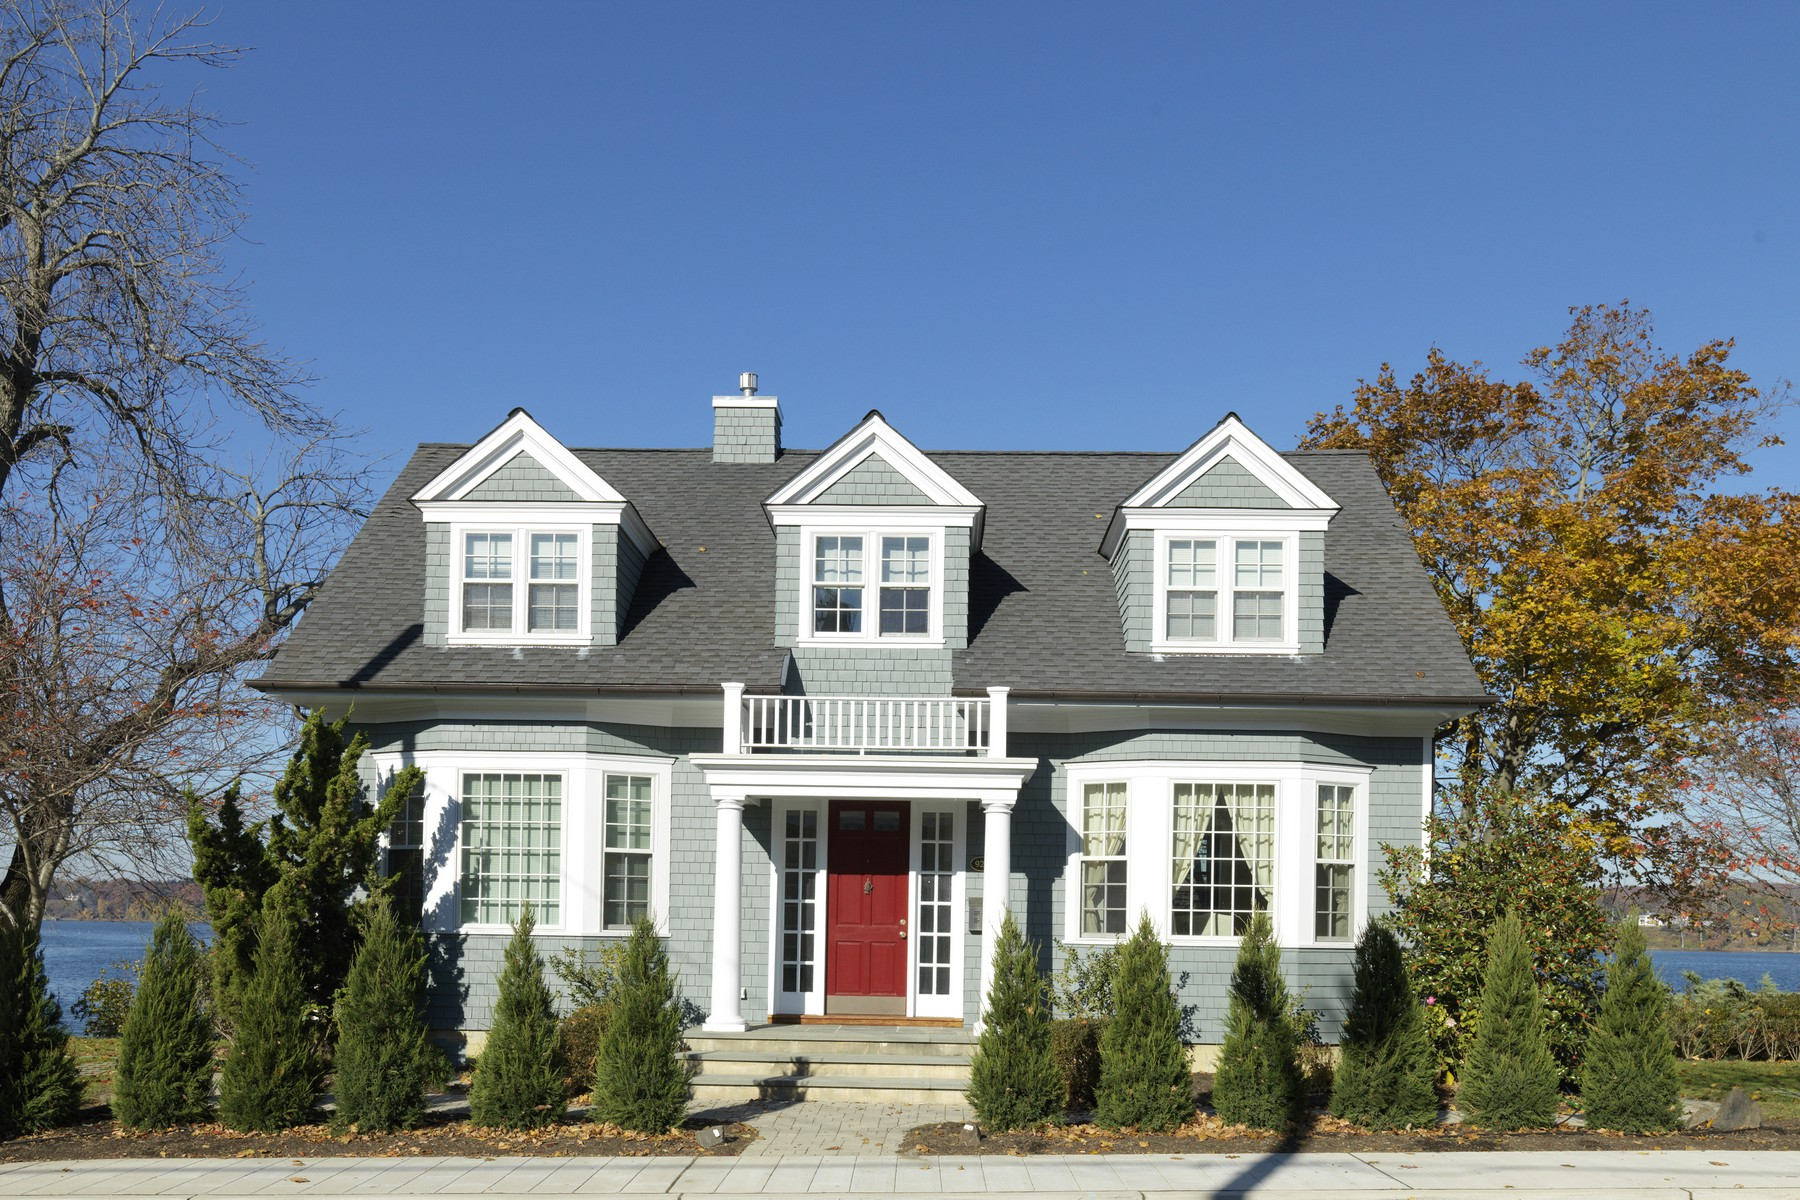 Single Family Home for Sale at Carpe Diem 923 River Road Fair Haven, New Jersey 07704 United States